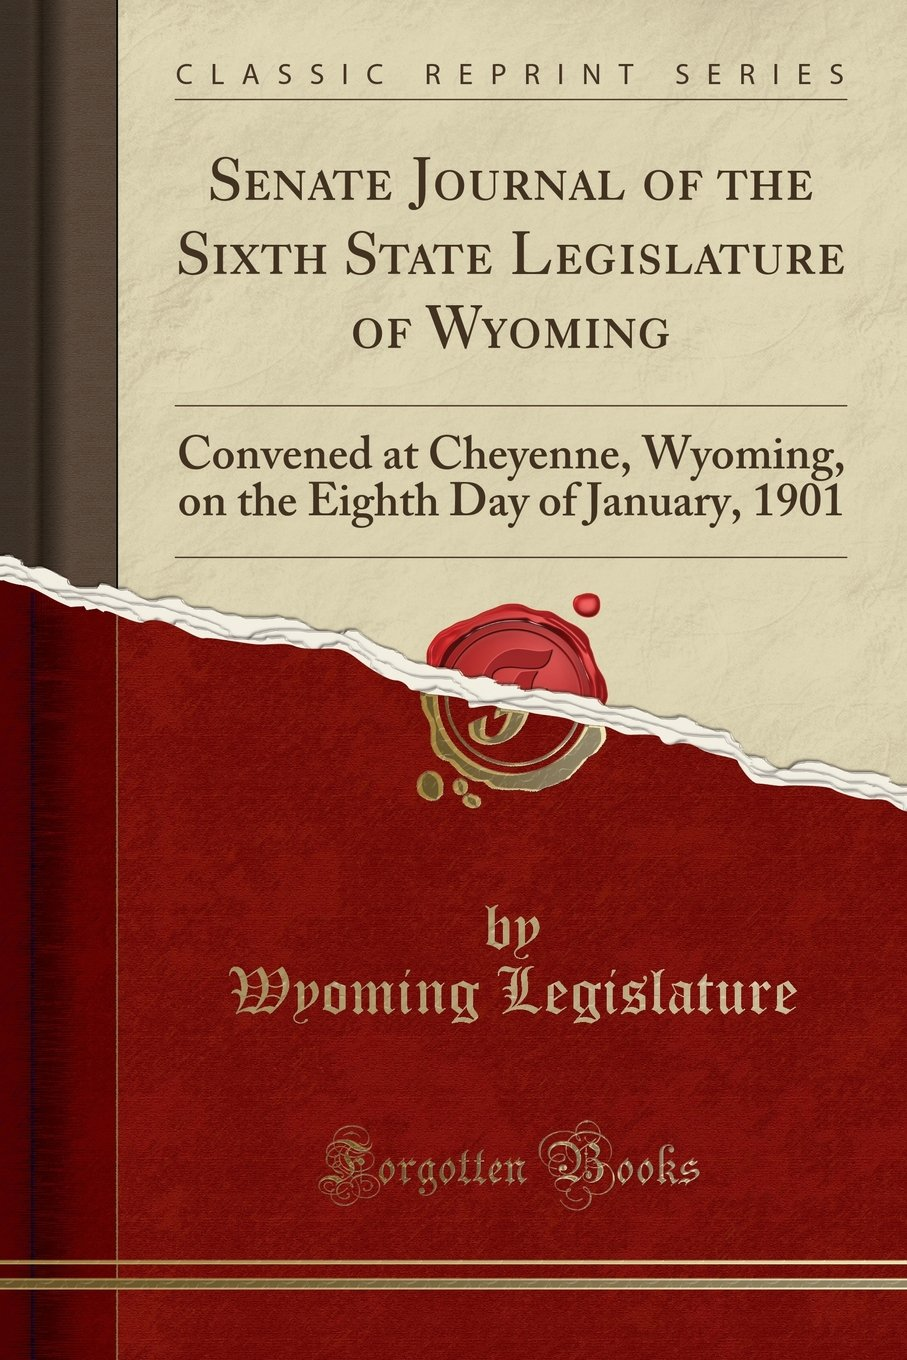 Senate Journal of the Sixth State Legislature of Wyoming: Convened at Cheyenne, Wyoming, on the Eighth Day of January, 1901 (Classic Reprint) pdf